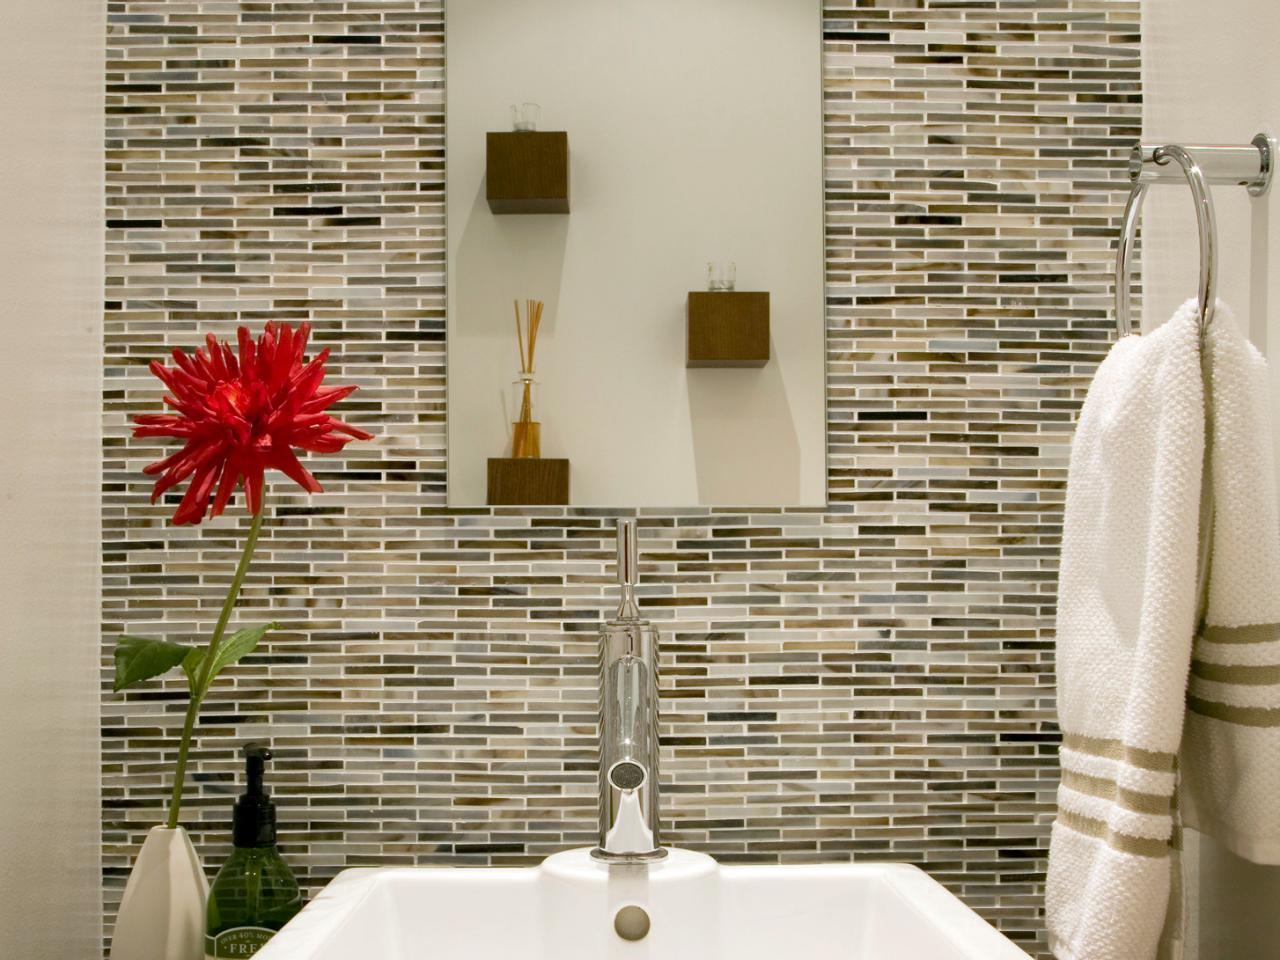 Delightful Bathroom Decor With Magnificent Backsplash also Mirror